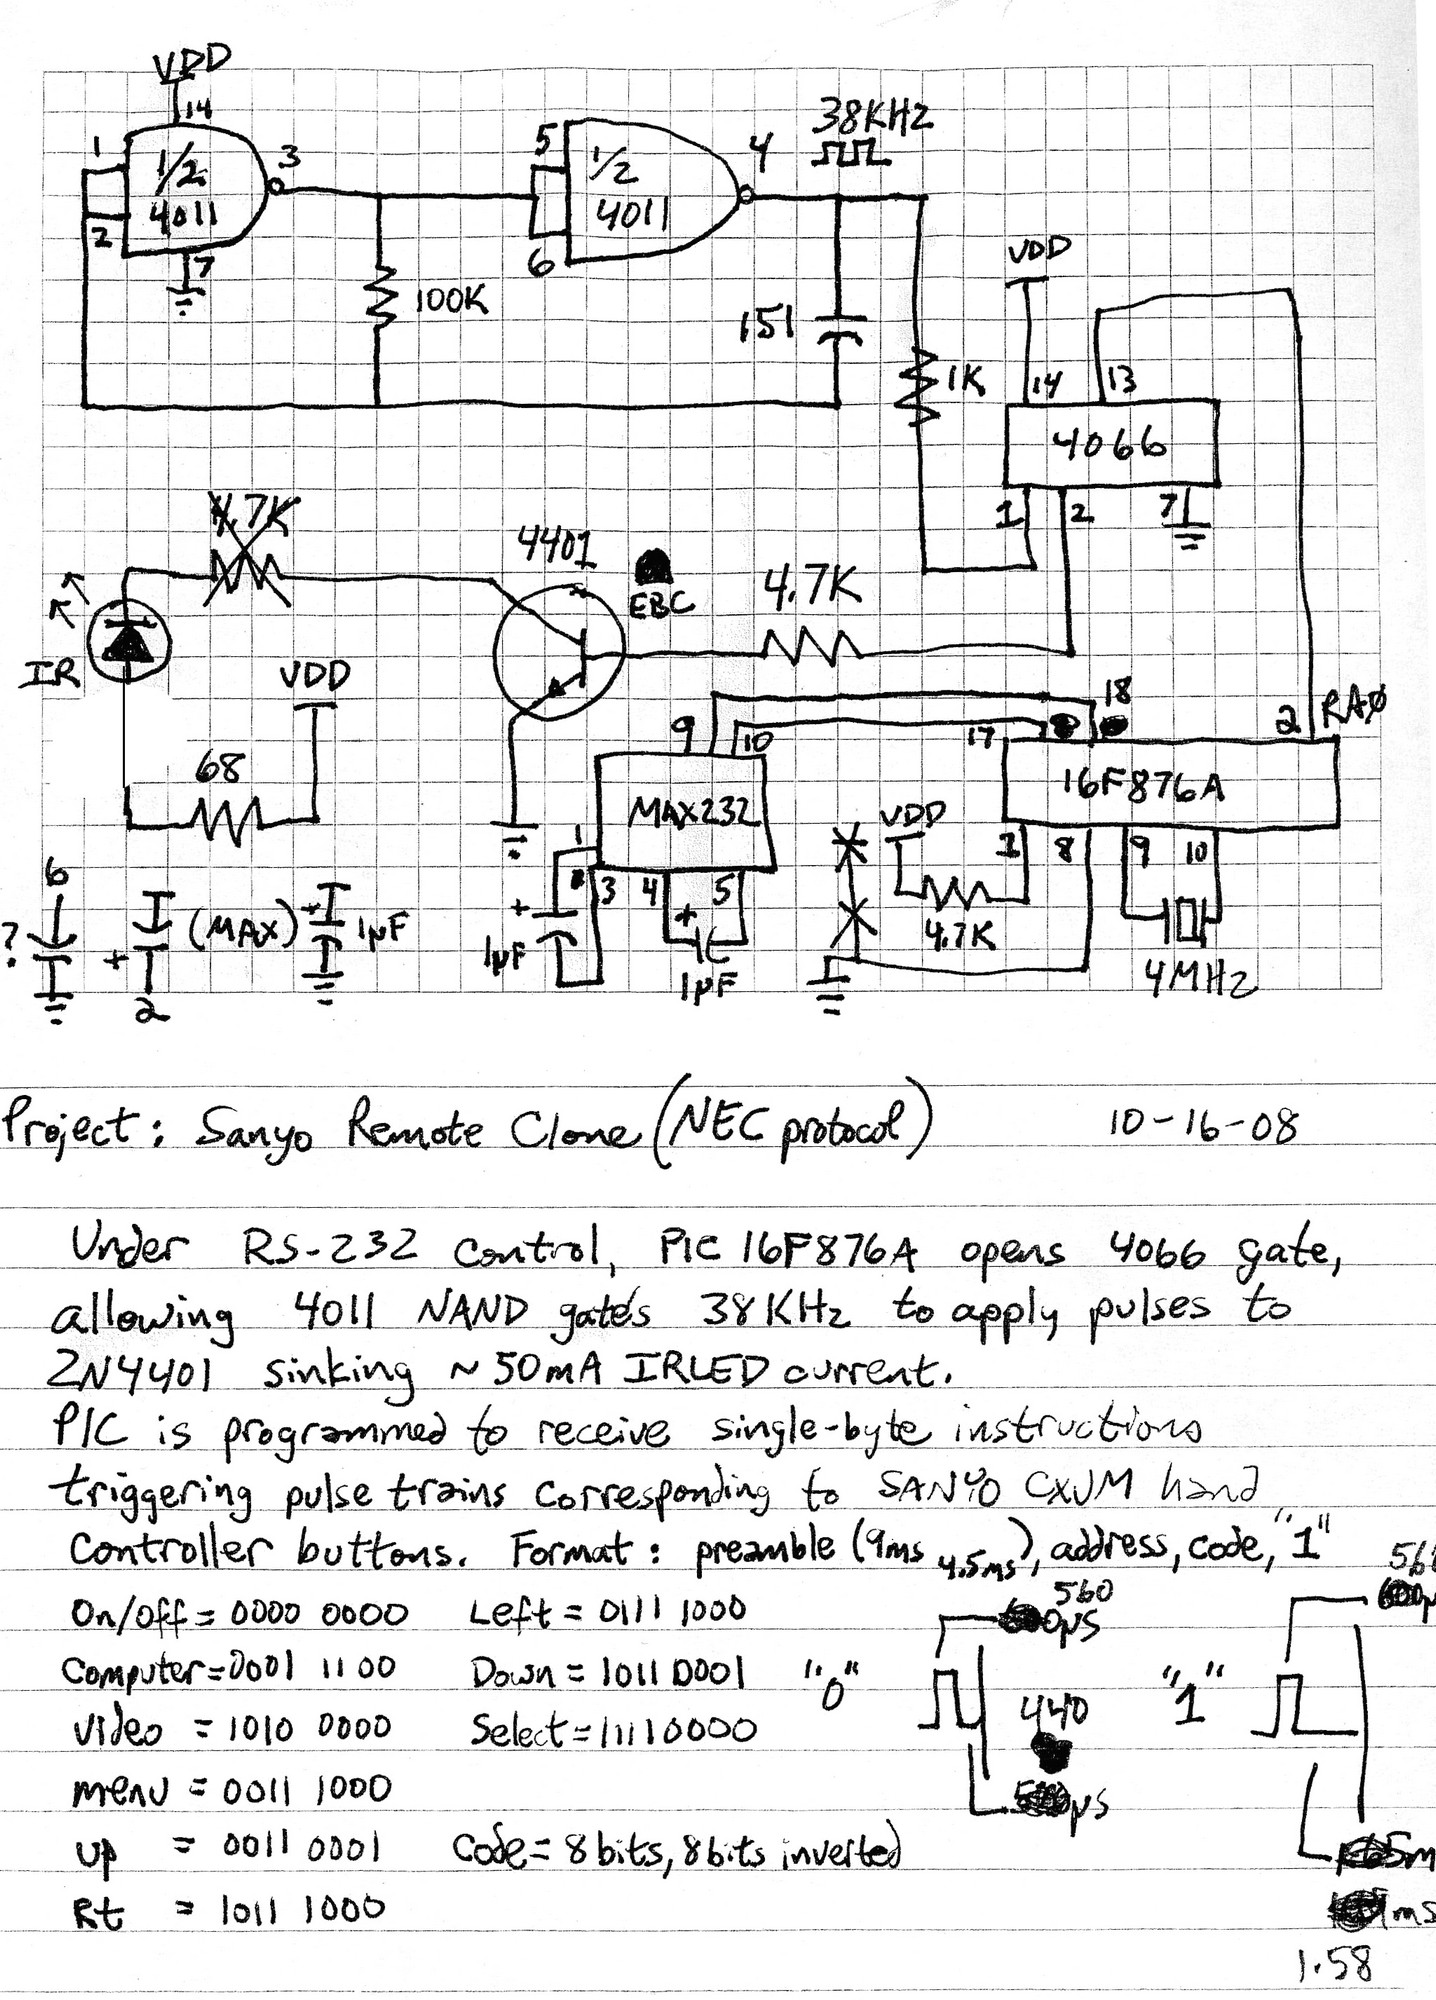 Remote Control Circuit Page 5 Automation Circuits Split Relay Wiring Diagram Hampton Bay Air Conditioner Ir Reverse Engineer